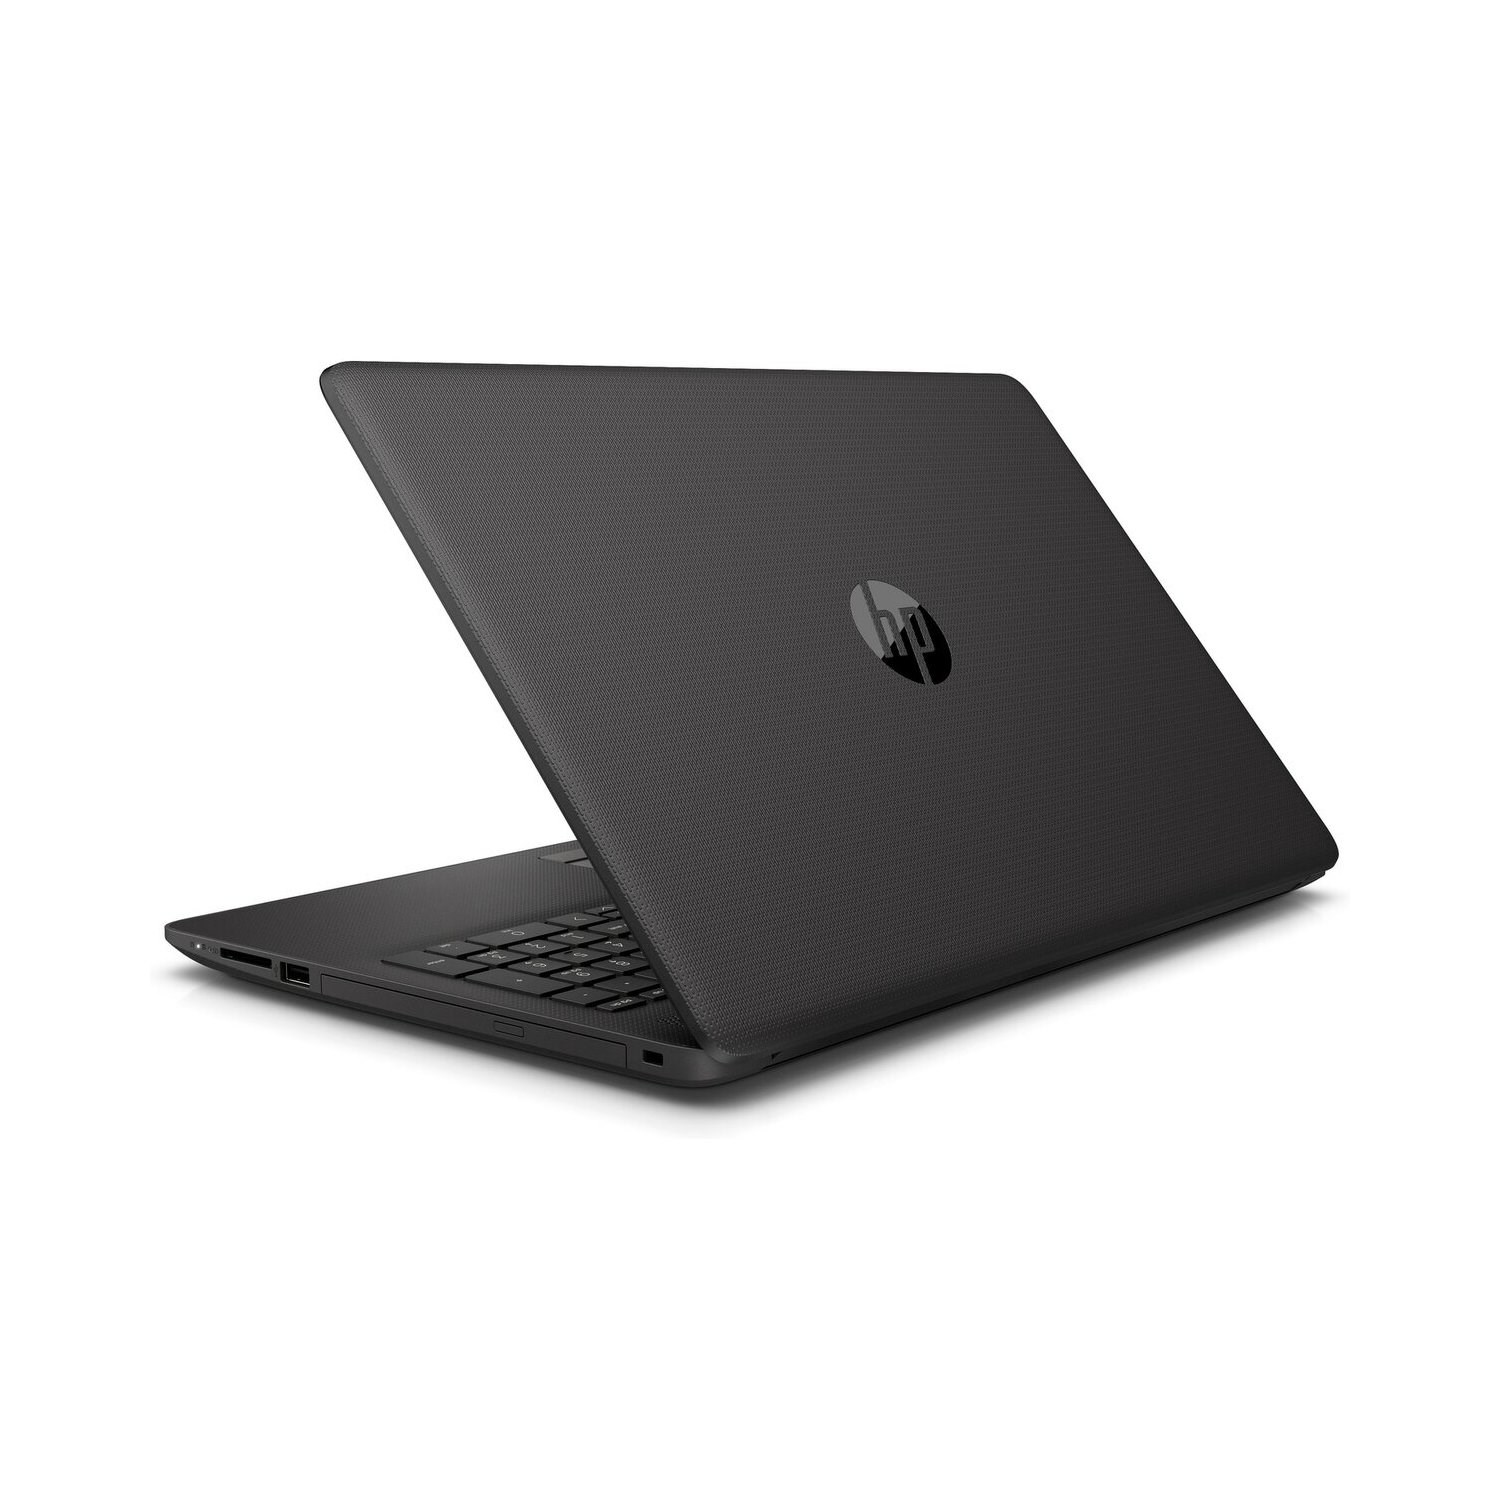 Hp 250 G7 Core I7 8565u 8gb 256gb Ssd 15 6 Inch Windows 10 Pro Laptop Laptops Direct